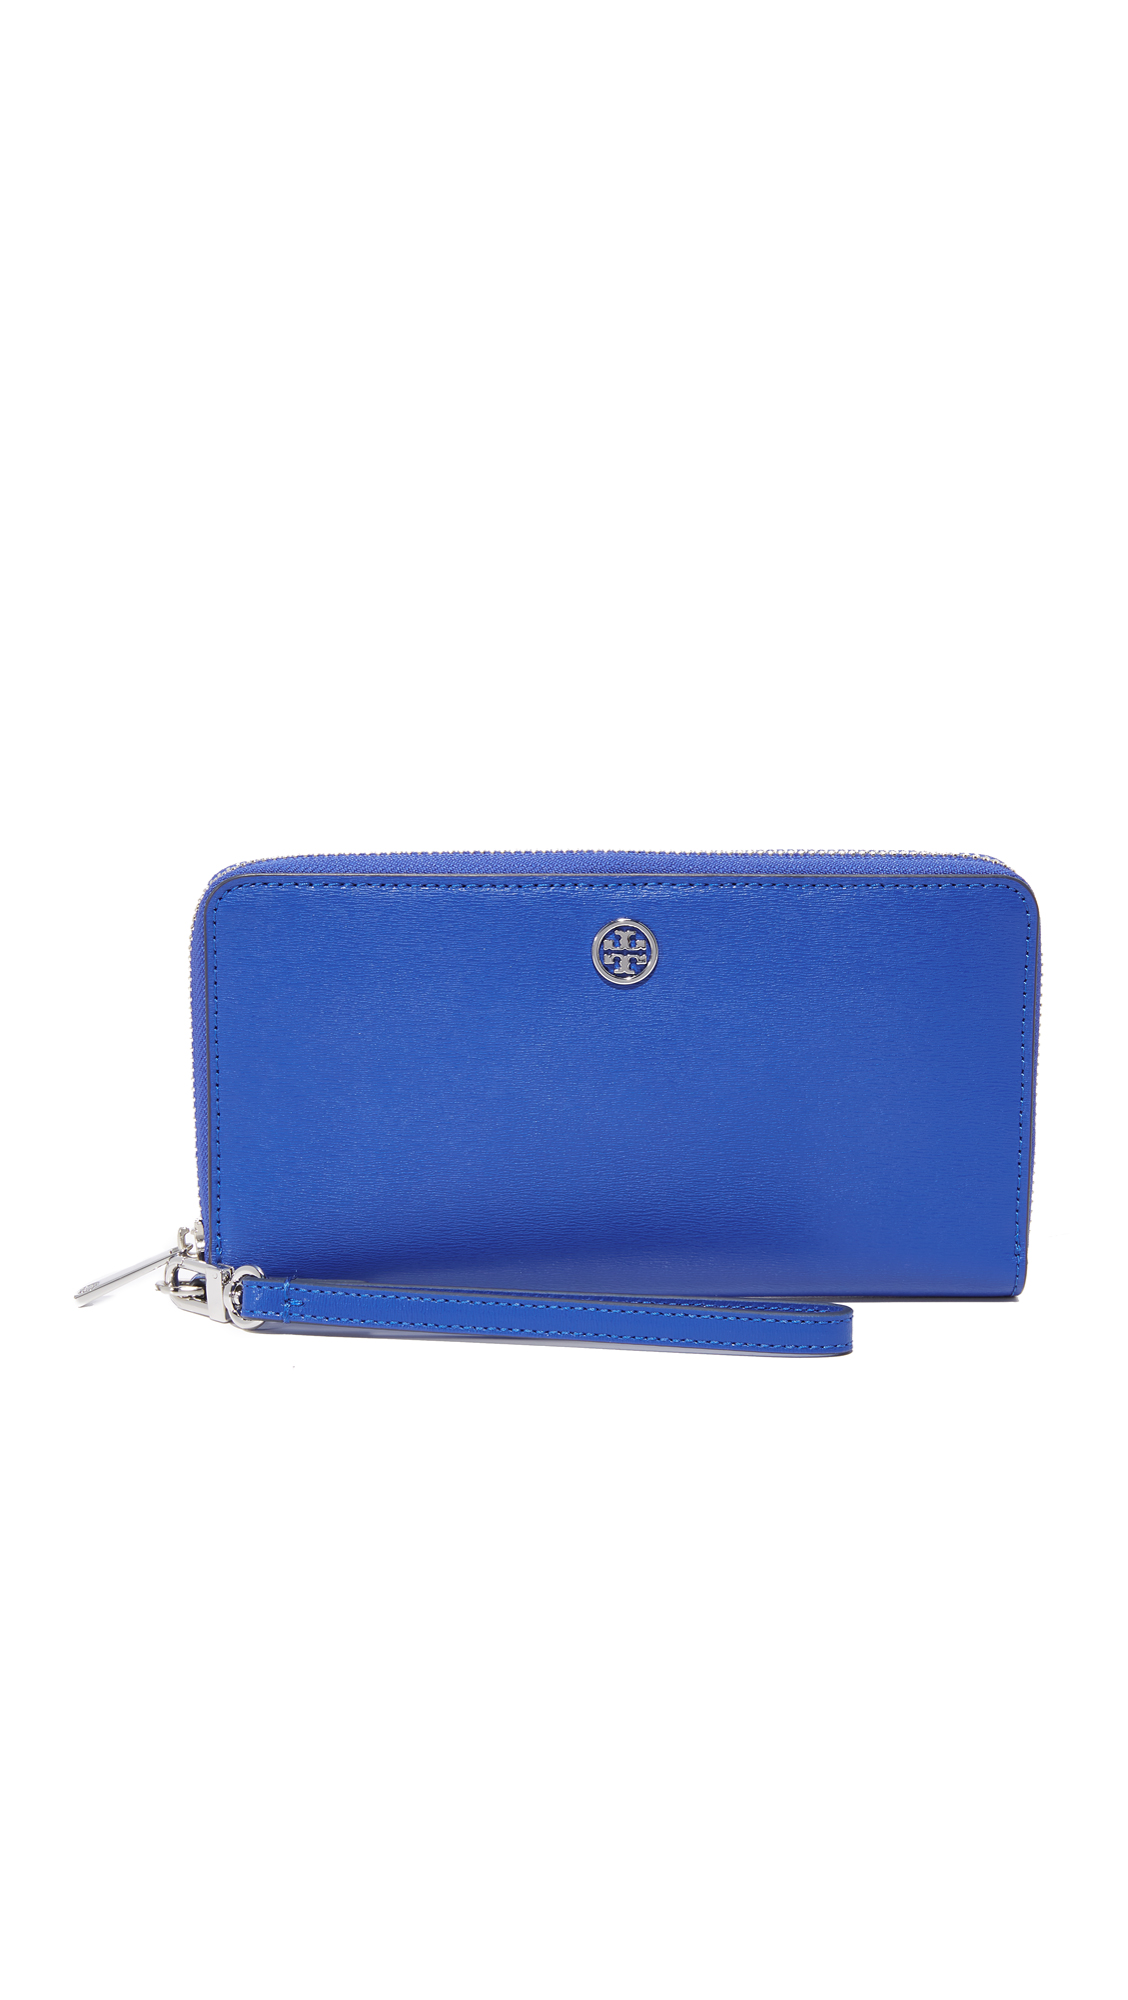 2eac91f01798 Tory Burch Parker Zip Continental Wallet